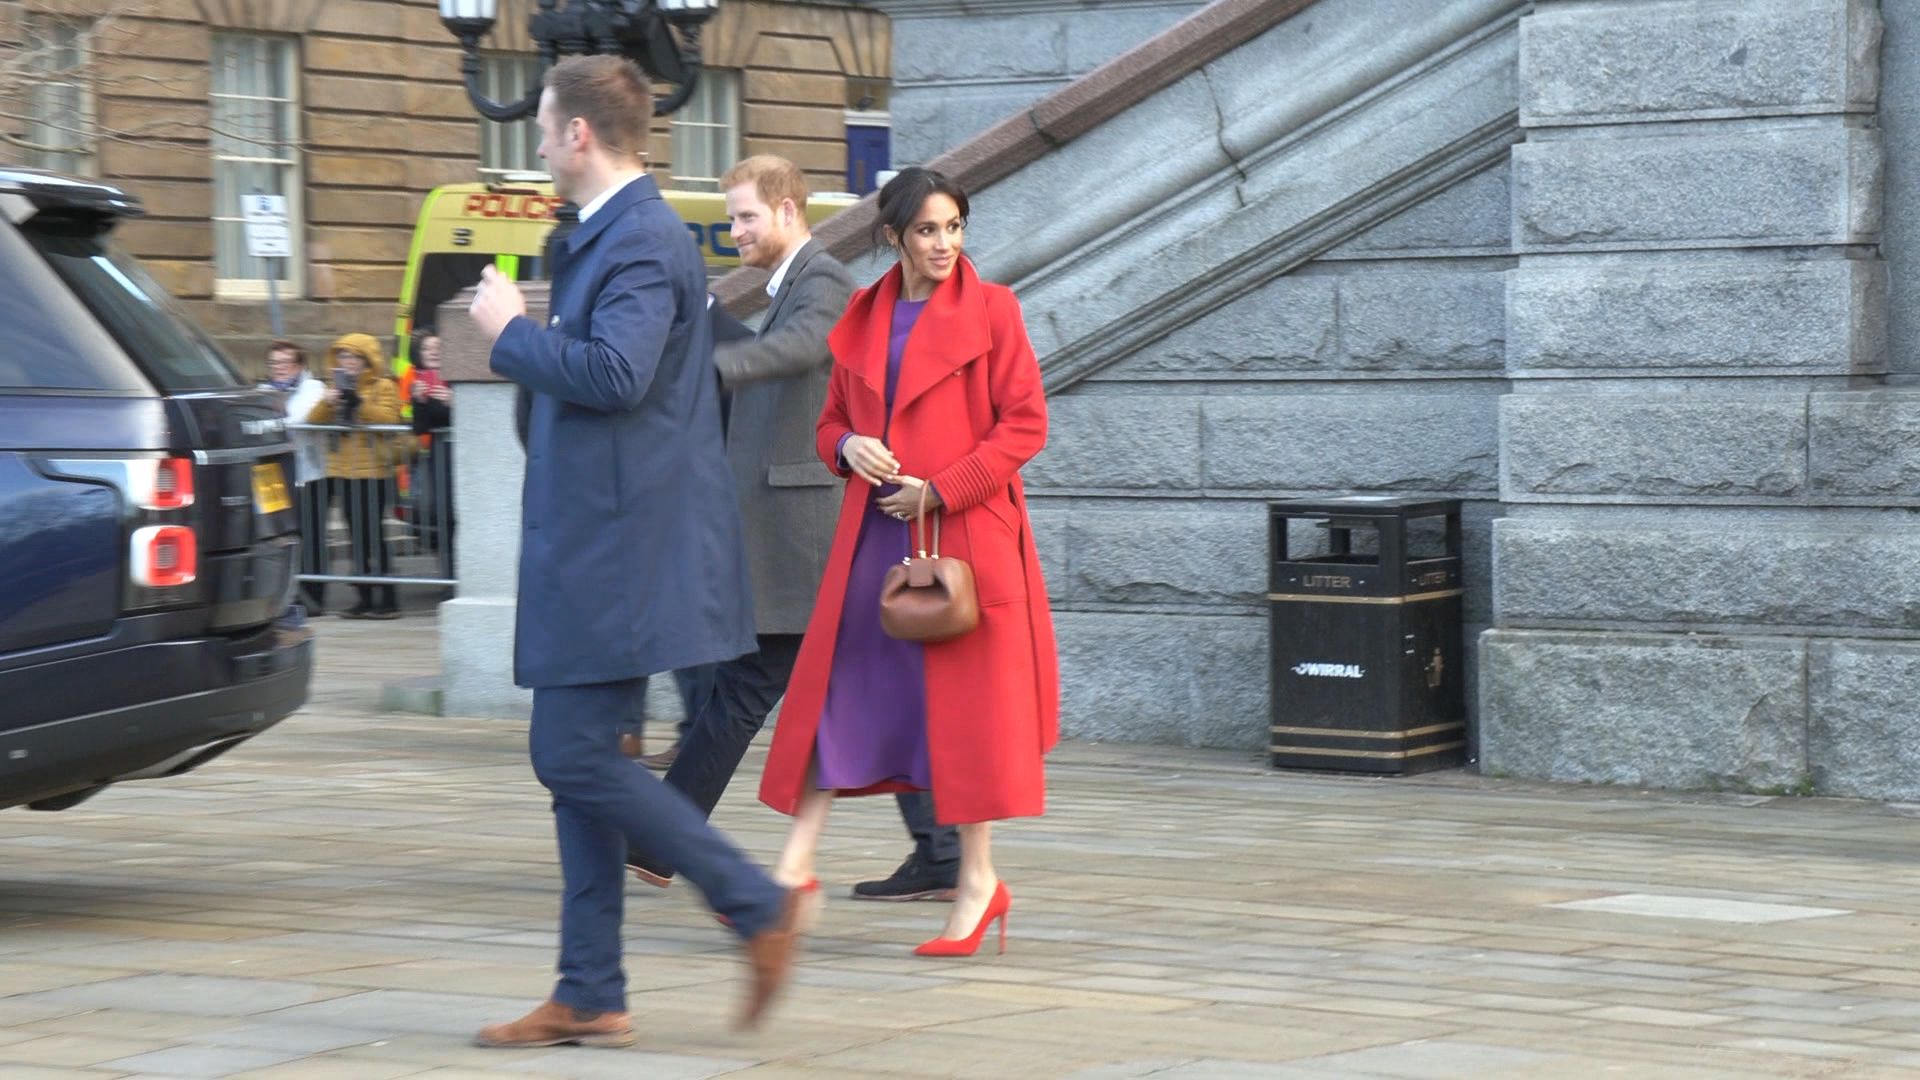 Was Meghan's colour-clashing outfit a subtle tribute to Princess Diana?